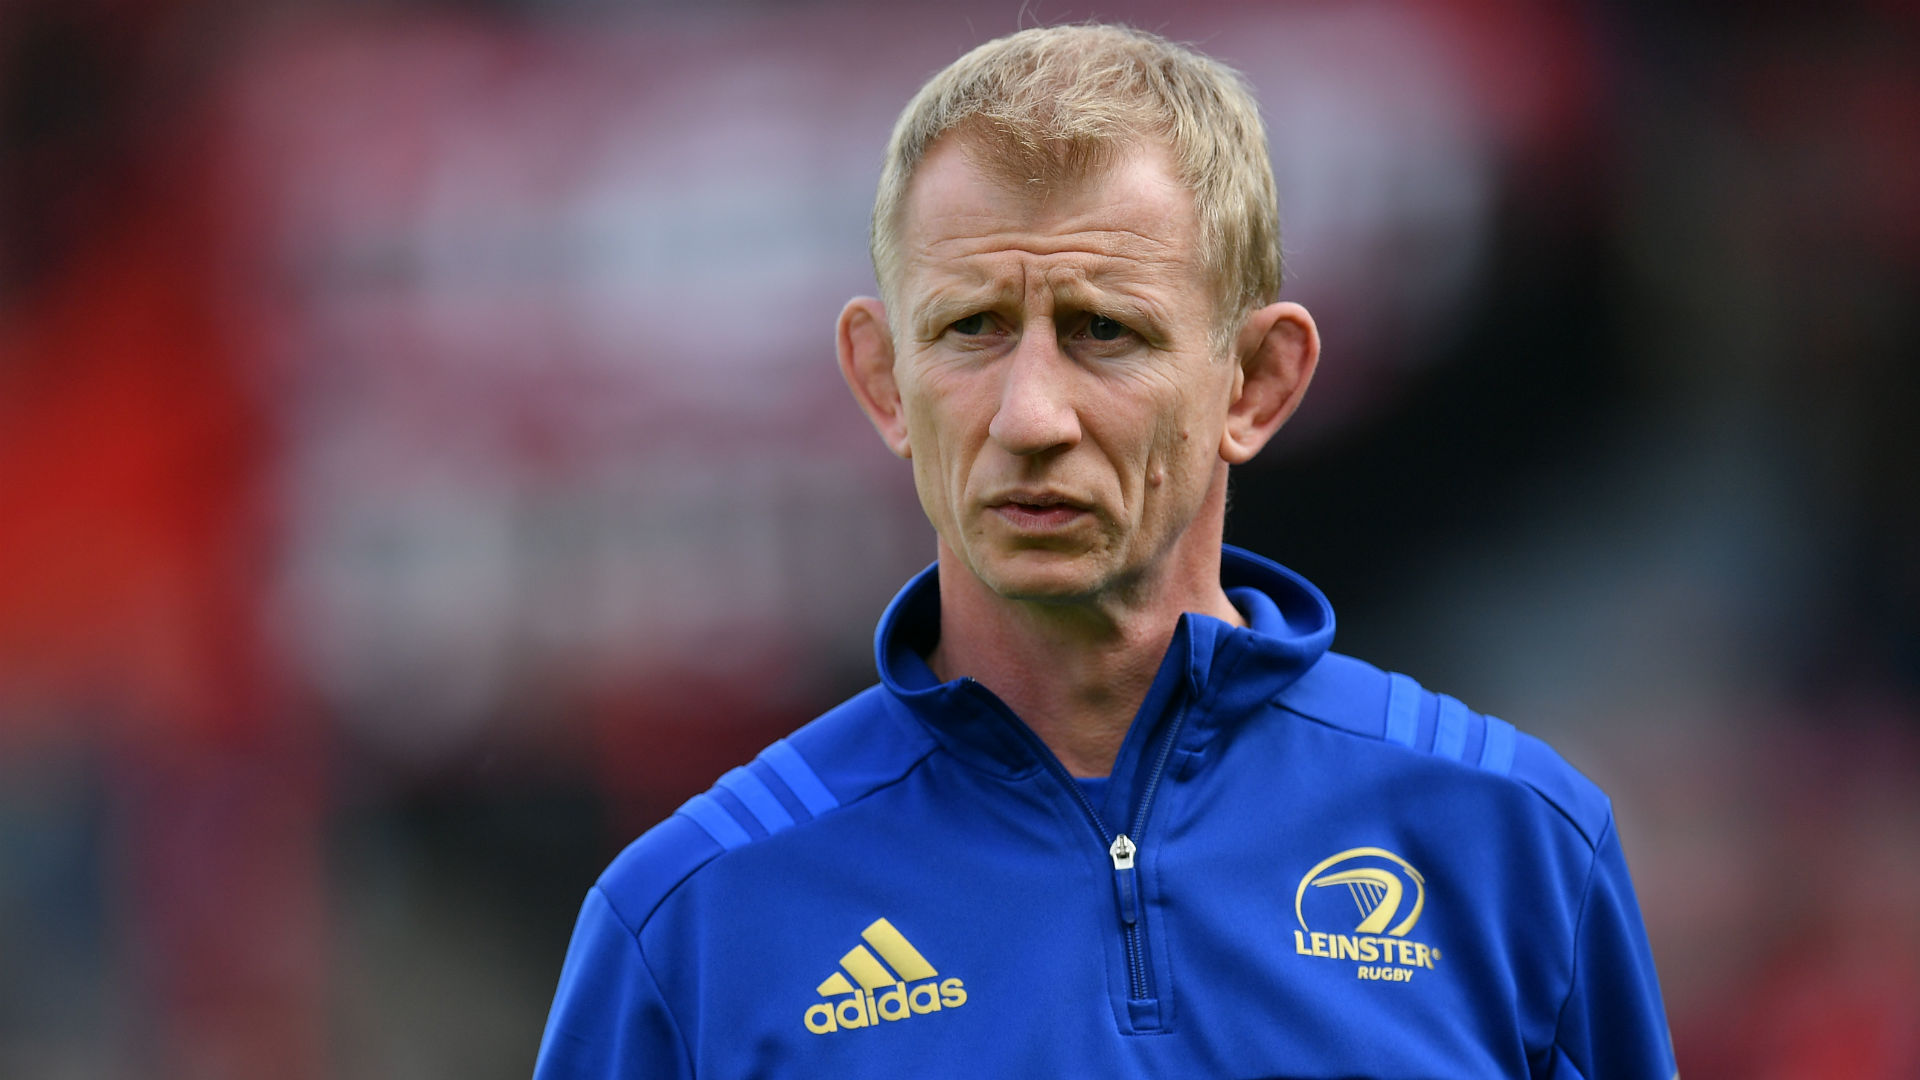 After last year's European Champions Cup success, Leinster have moved to retain head coach and club great Leo Cullen.